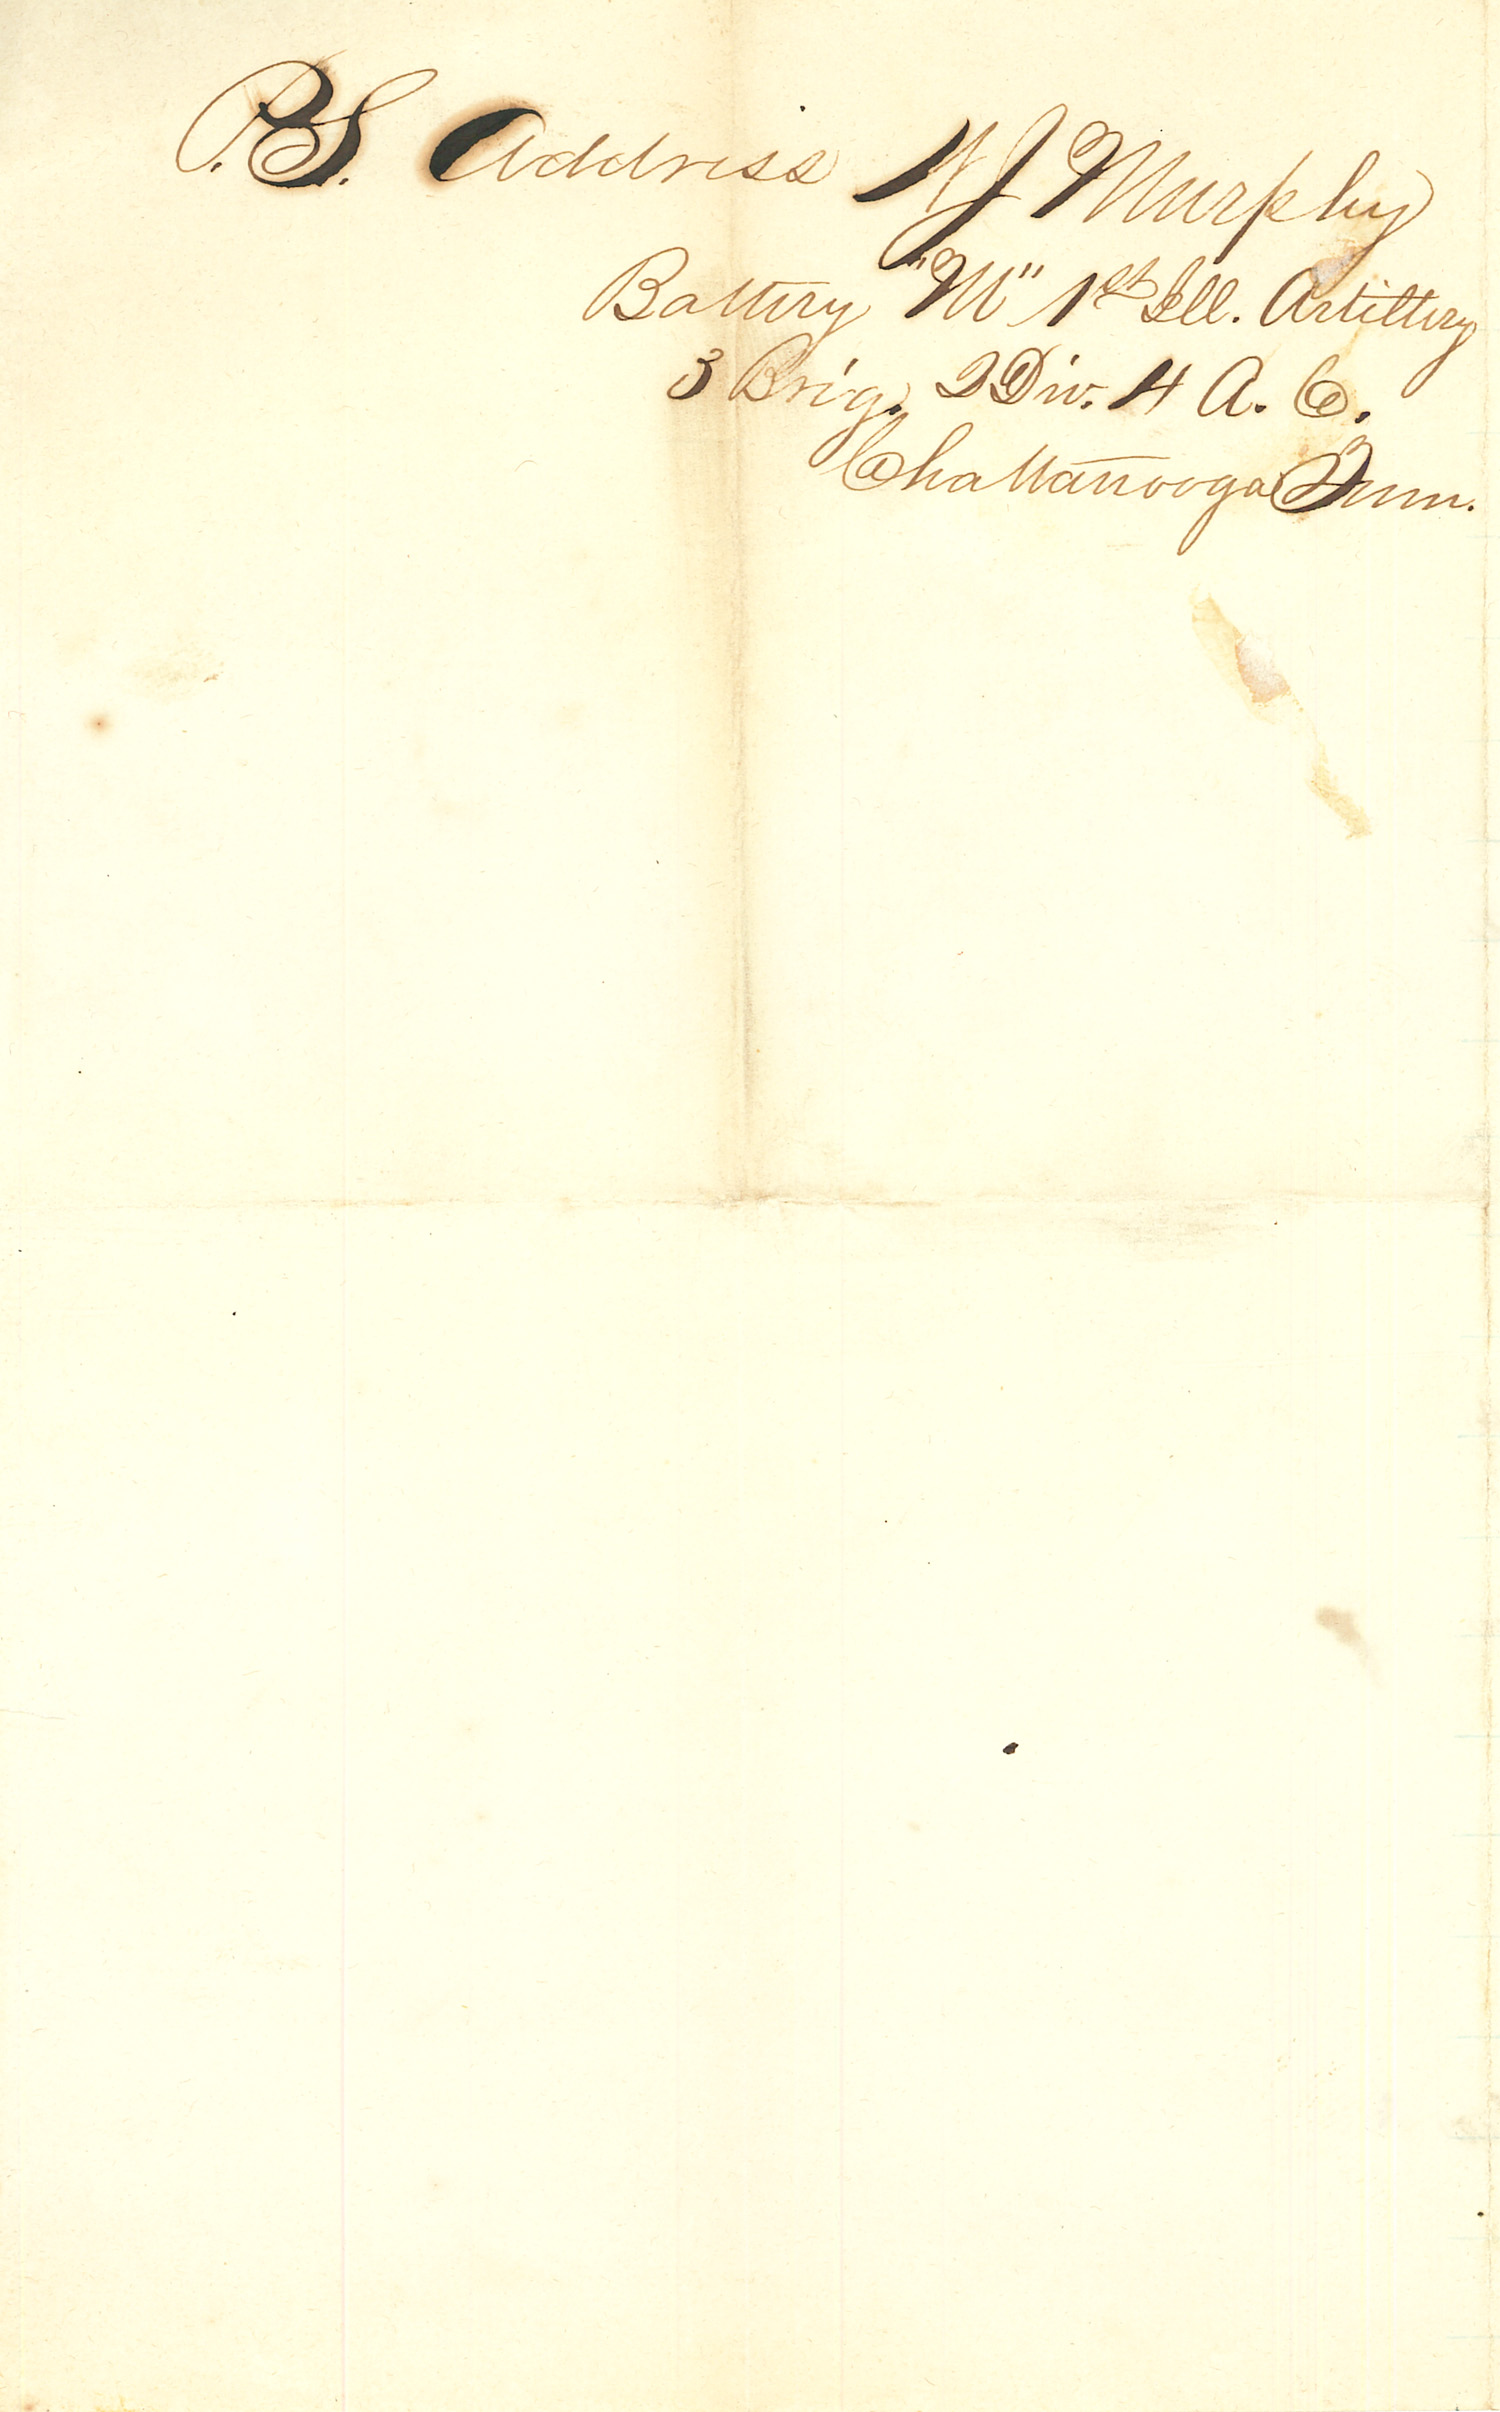 Joseph Culver Letter, October 6, 1863, Page 4